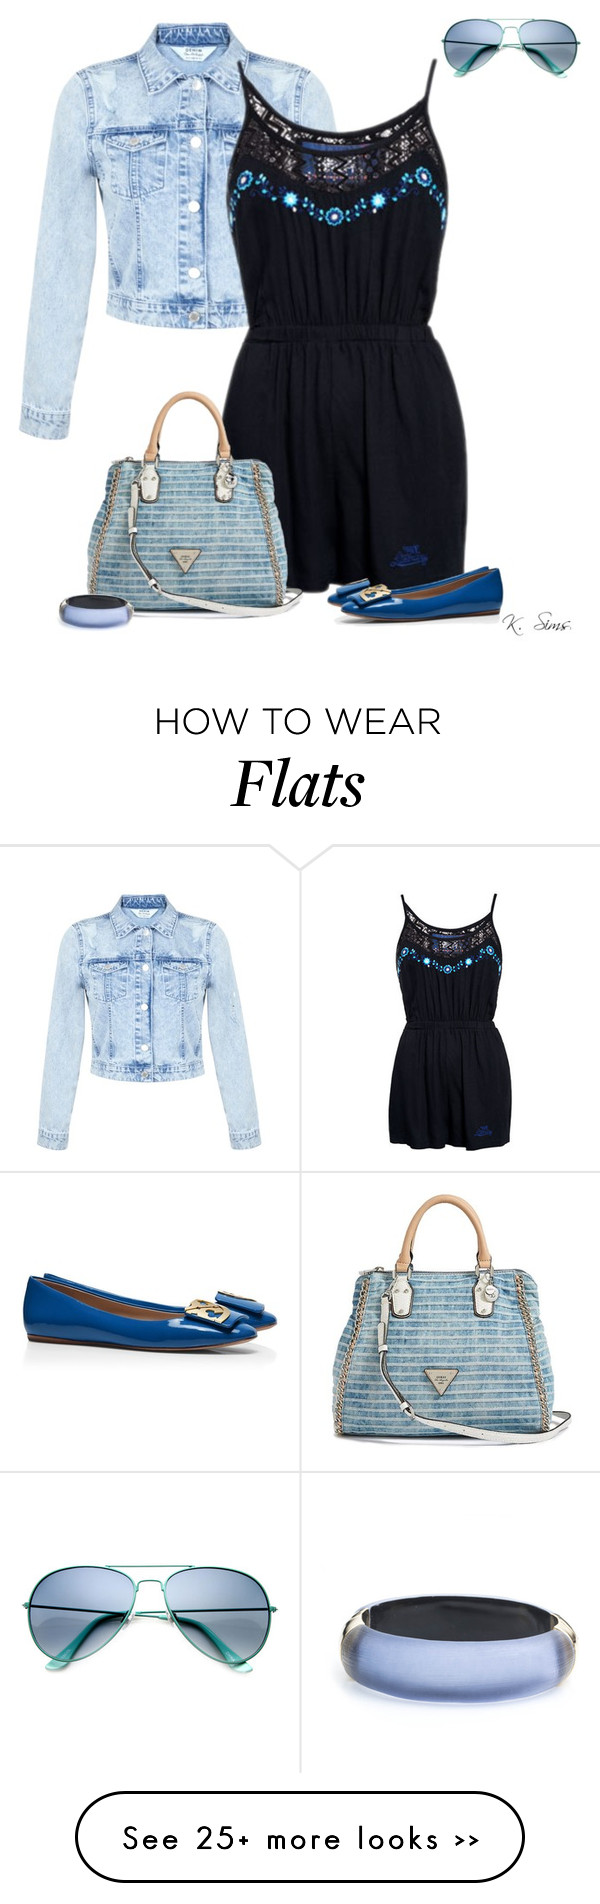 """Untitled #6084"" by ksims-1 on Polyvore"